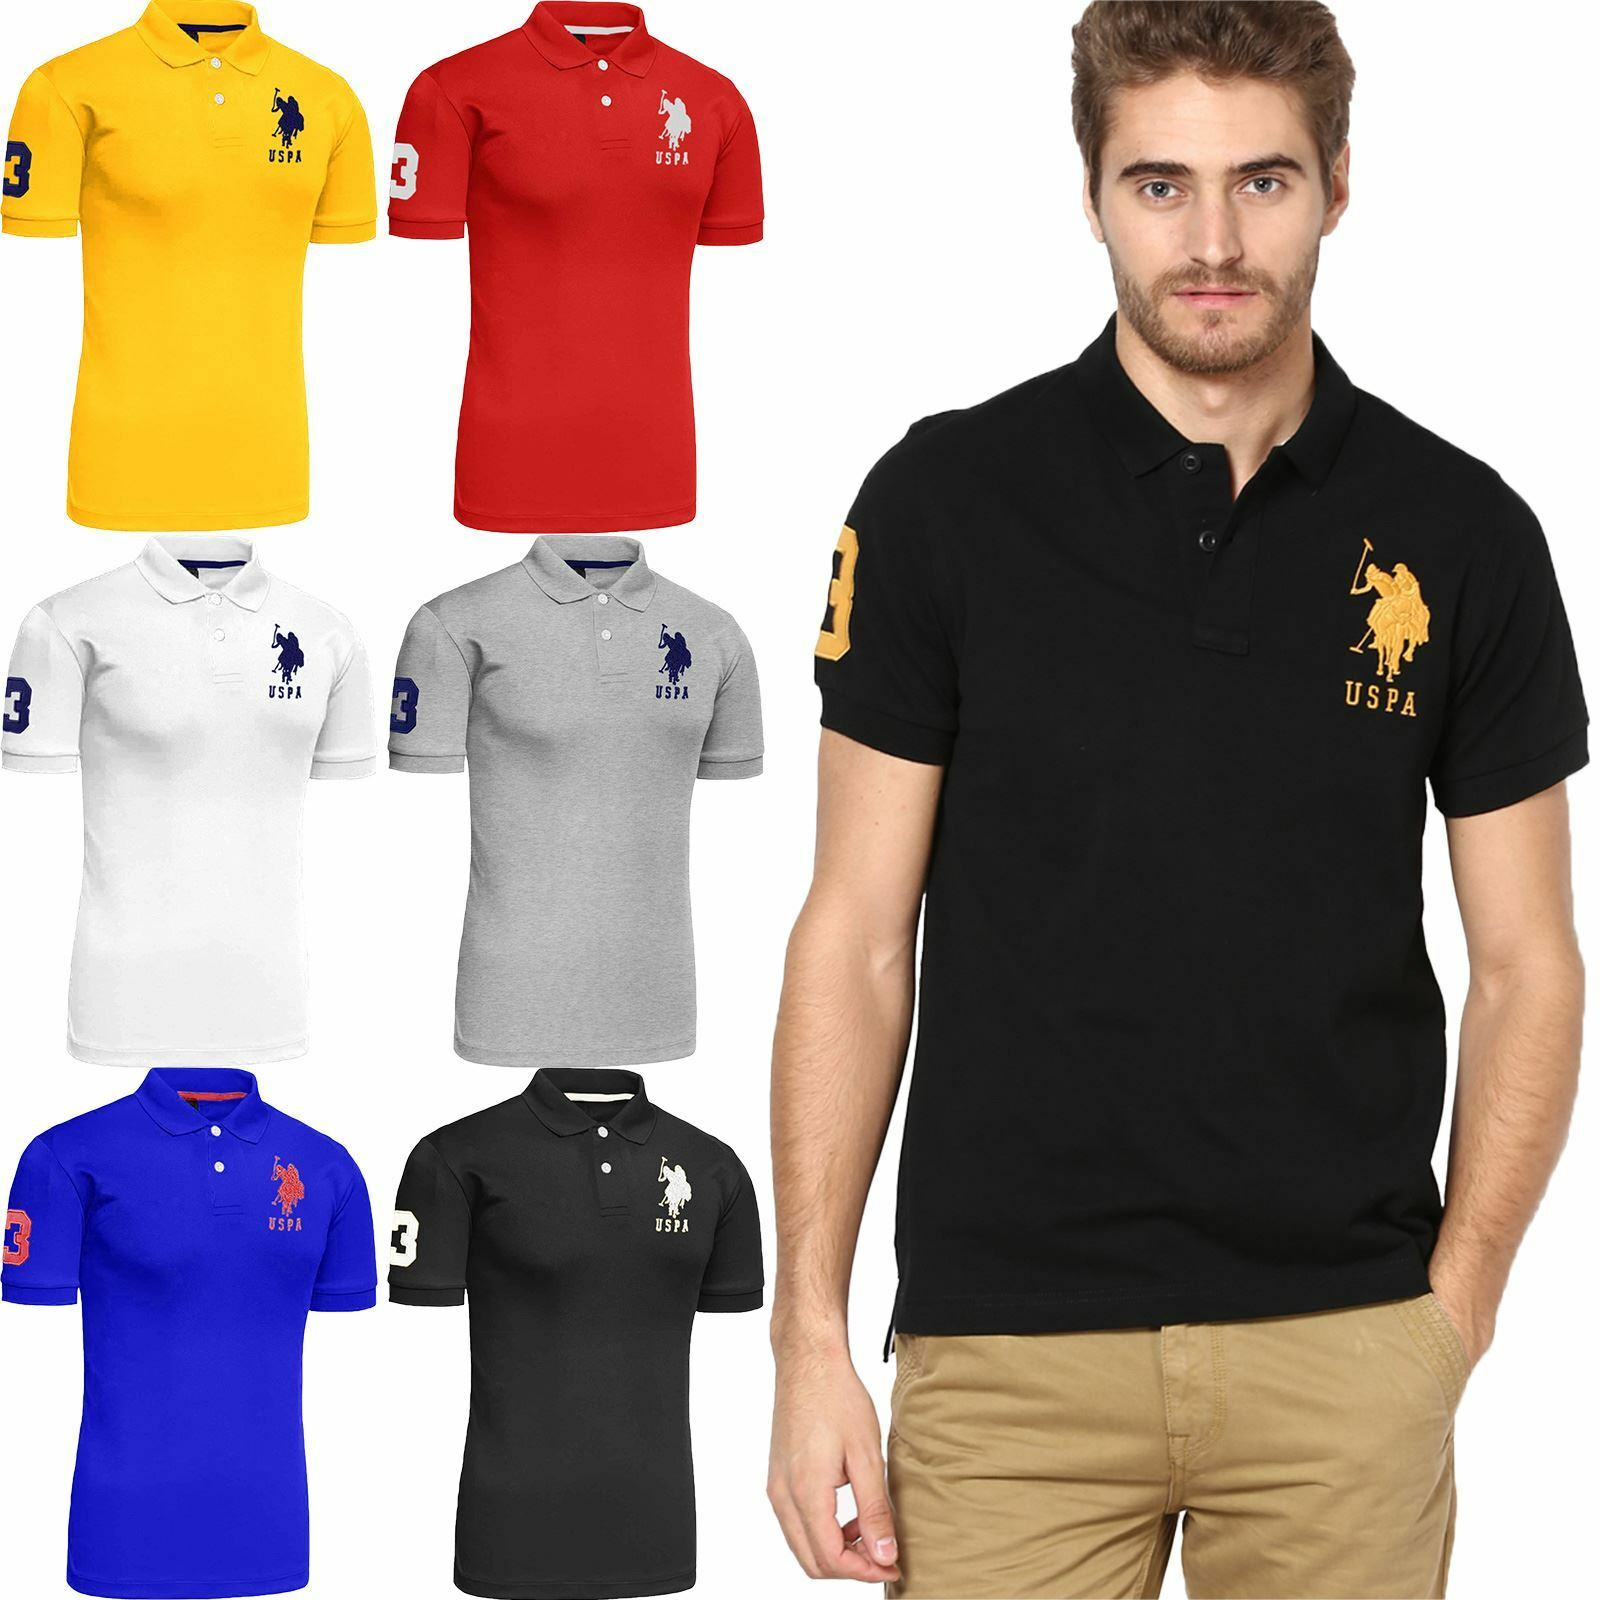 New mens us polo assn pique t shirt shirt branded top for Best polo t shirts for men